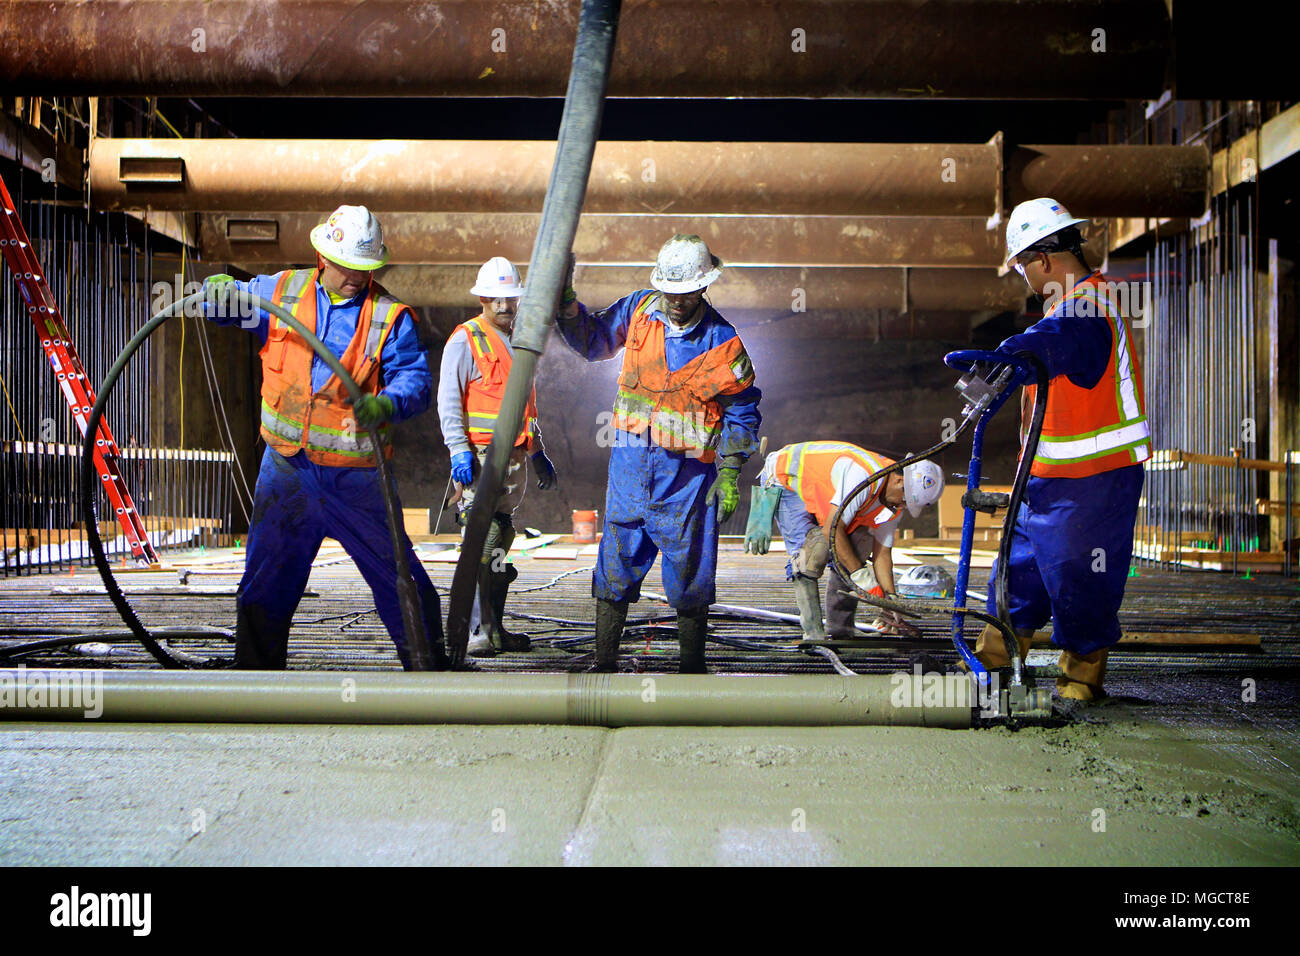 Workers placing concrete at night in the Montague Trench of the BART to Silicon Valley Berryessa Extension in Milpitas, California - Stock Image